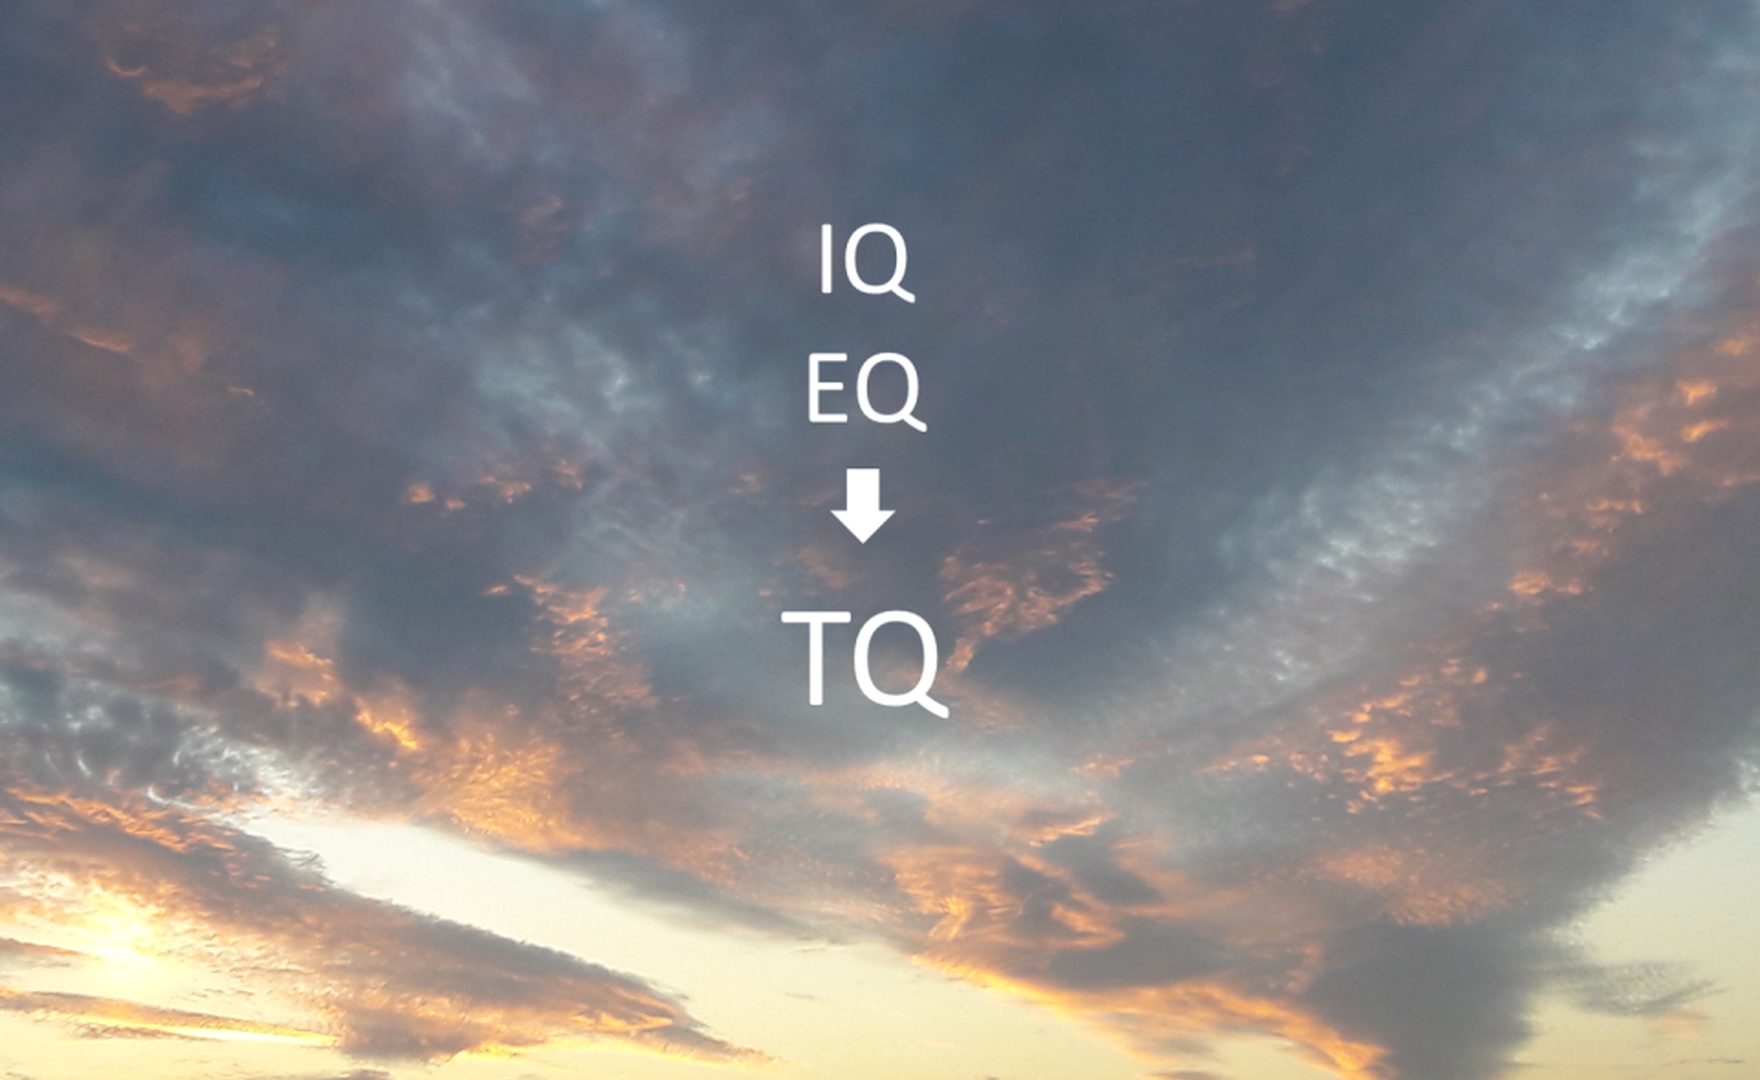 Beyond IQ & EQ – why leaders today need total intelligence (TQ)